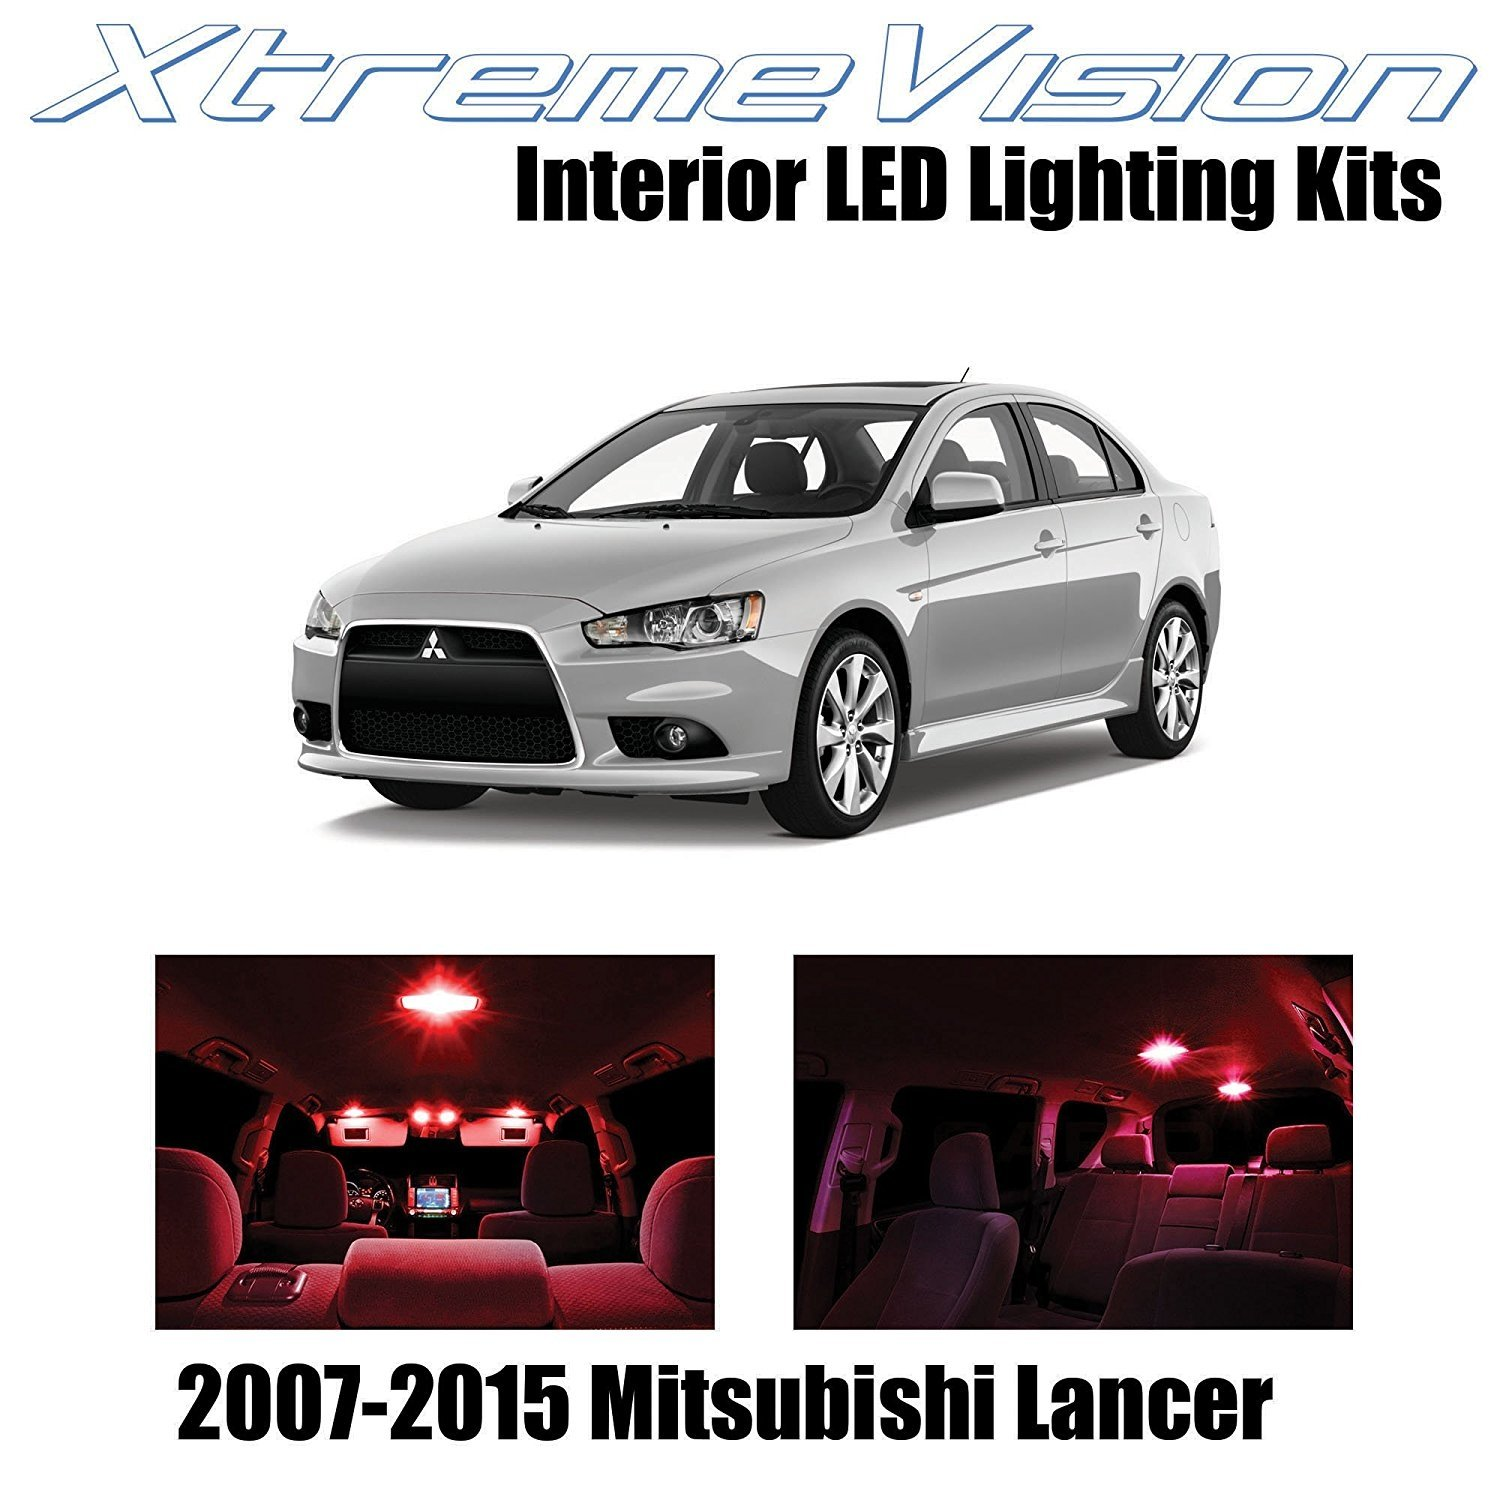 XtremeVision LED for Mitsubishi Evo Lancer 2007-2015 (8 Pieces) Red Premium Interior LED Kit Package + Installation Tool